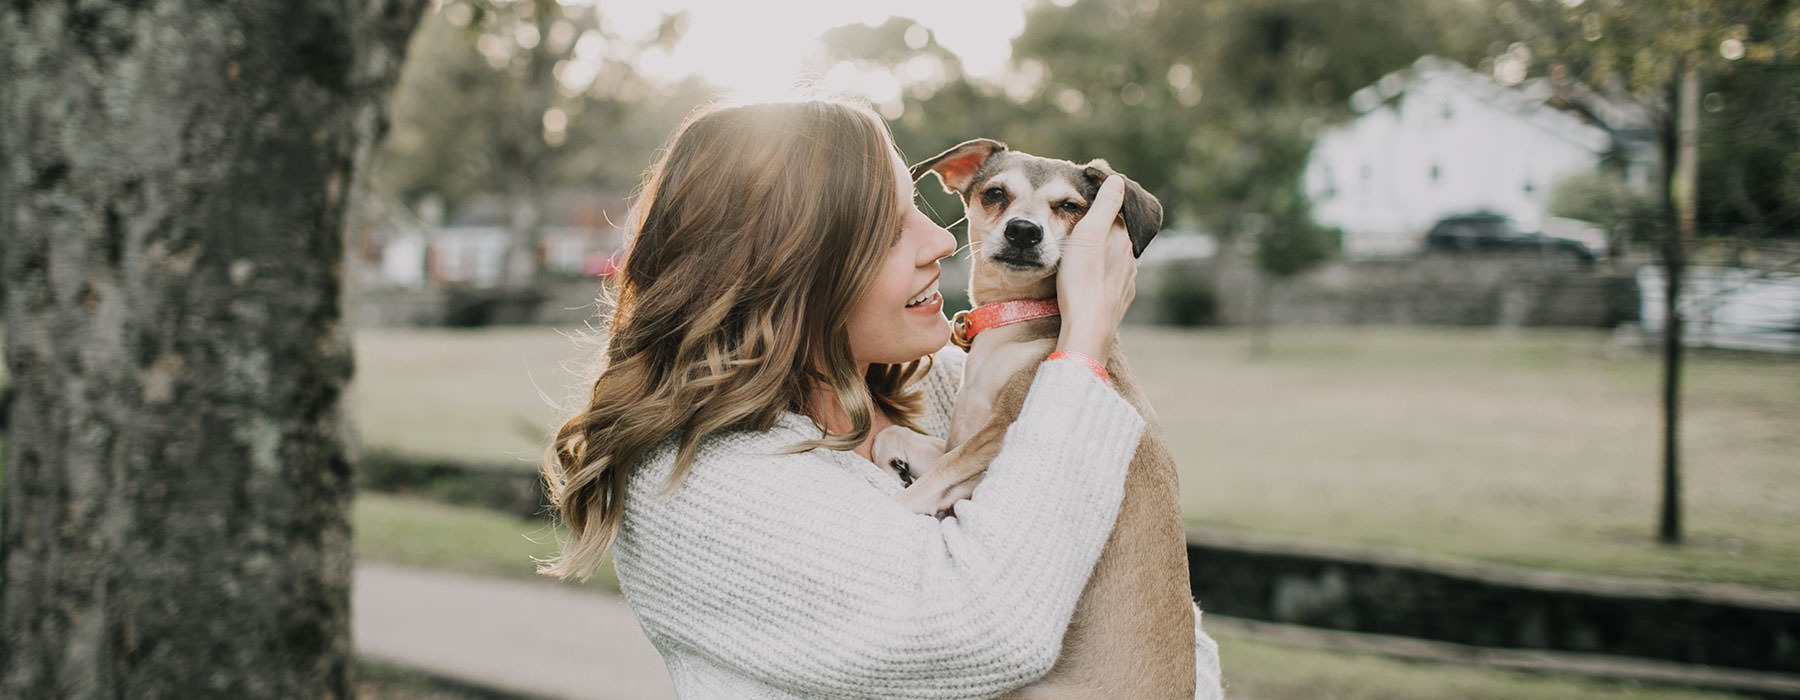 lifestyle image of a woman holding a dog